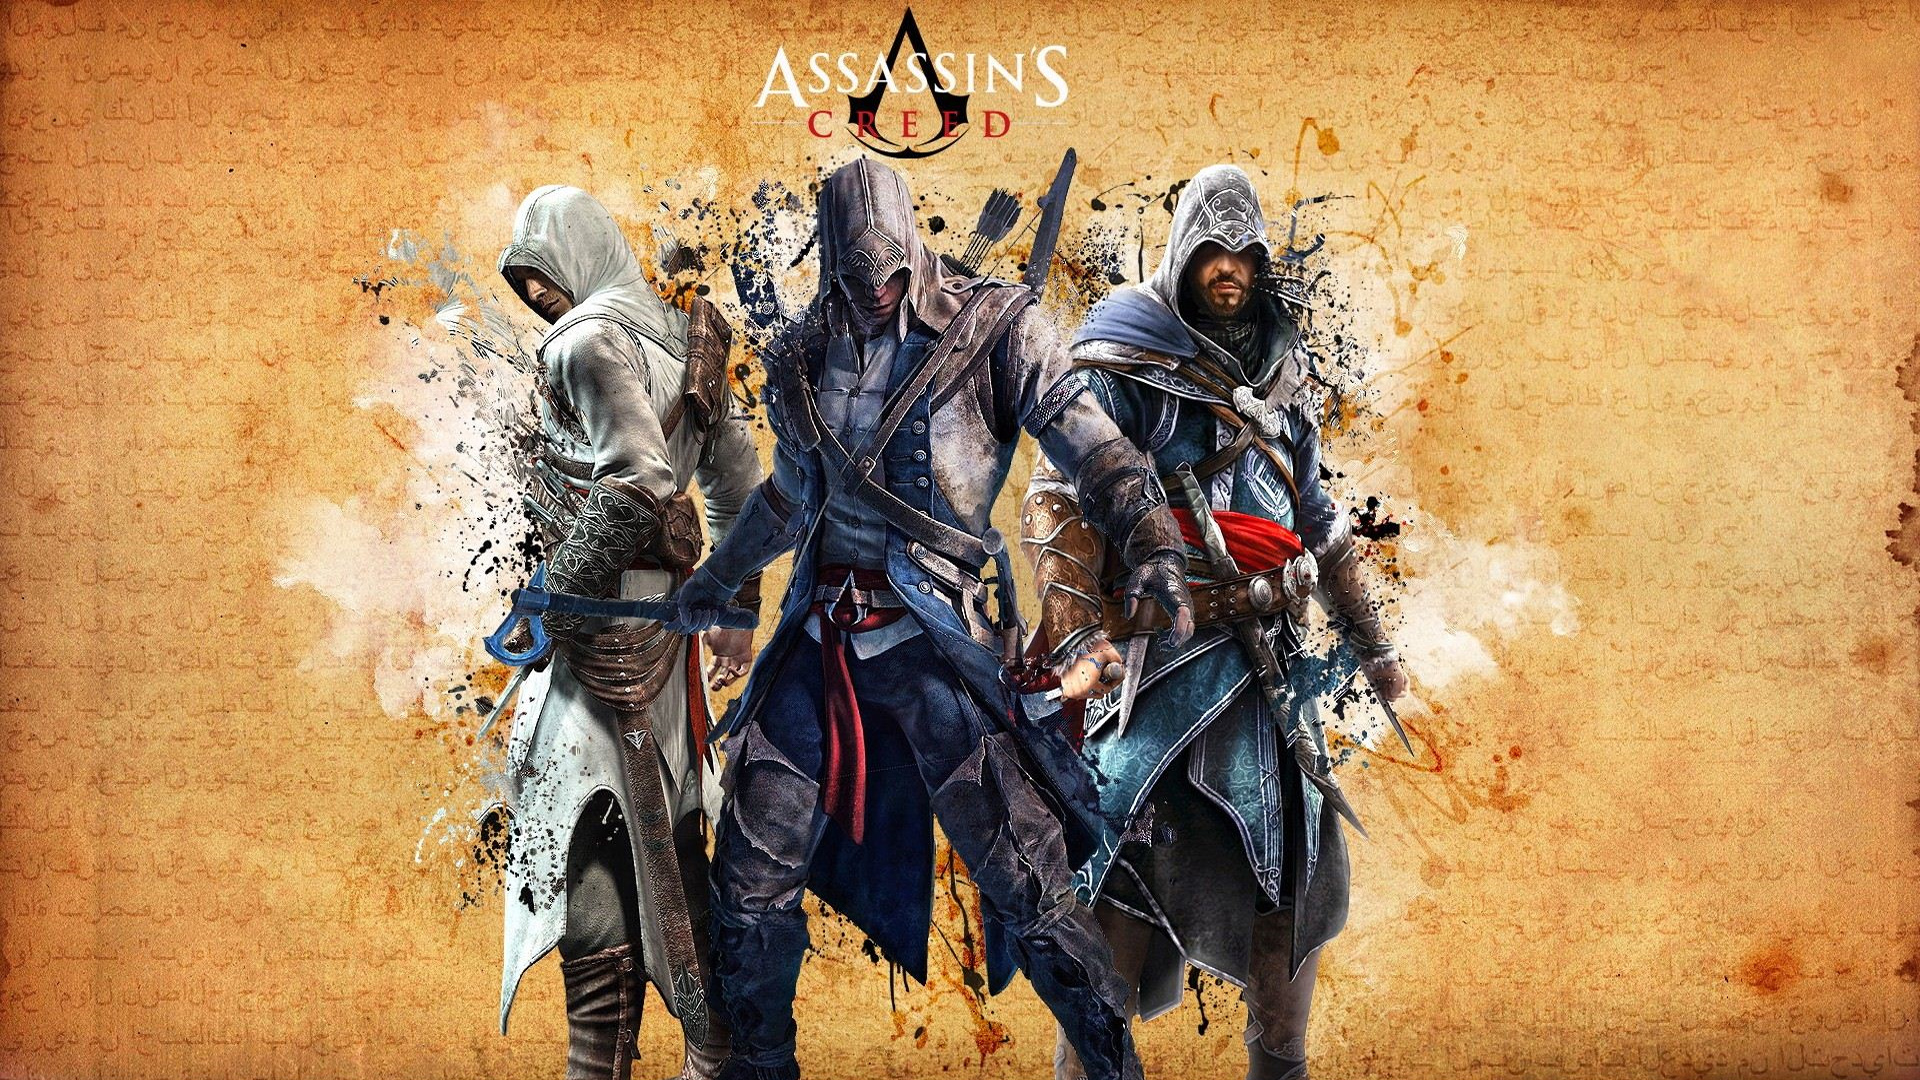 assassins creed game download for windows 10